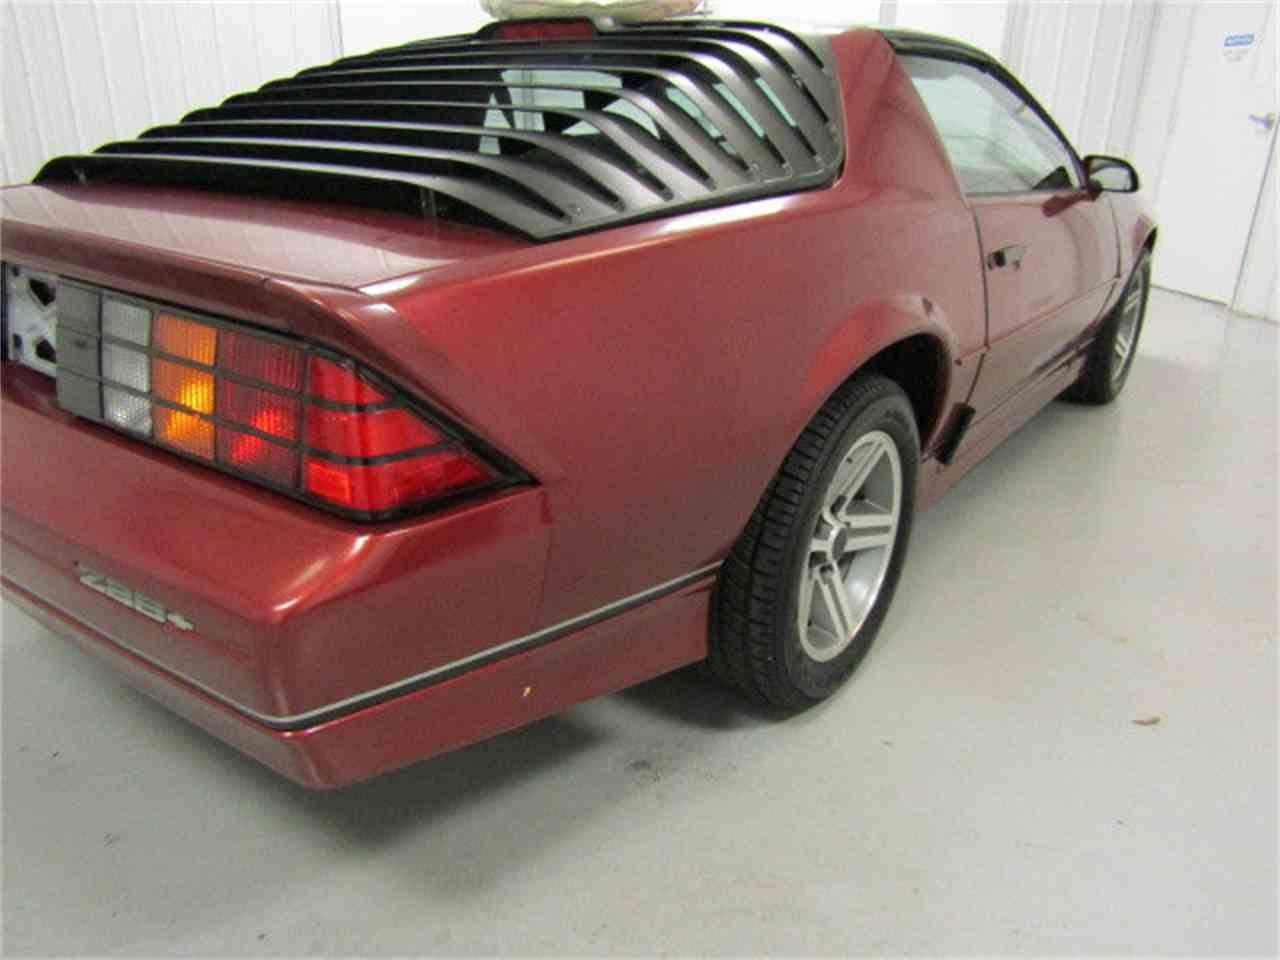 Large Picture of '86 Camaro - $24,900.00 Offered by Duncan Imports & Classic Cars - JLAE